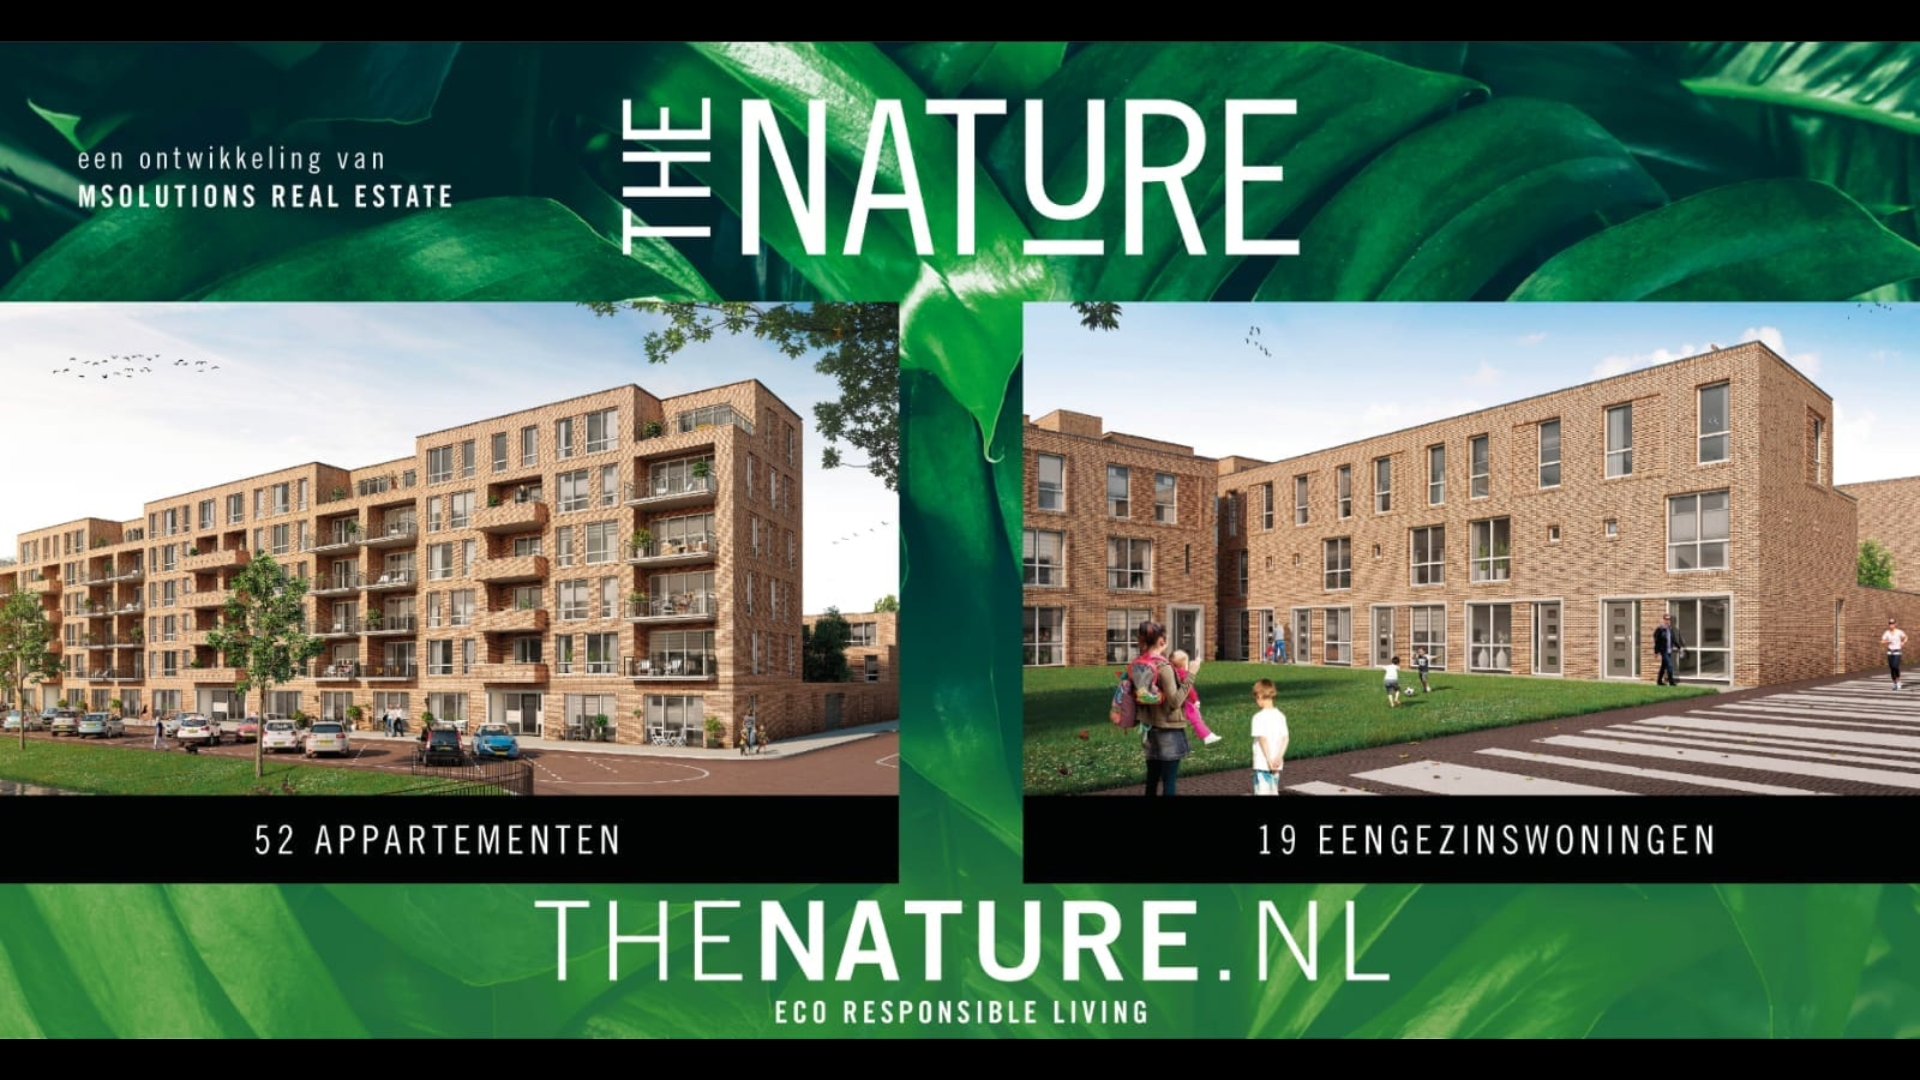 THE NATURE UTRECHT